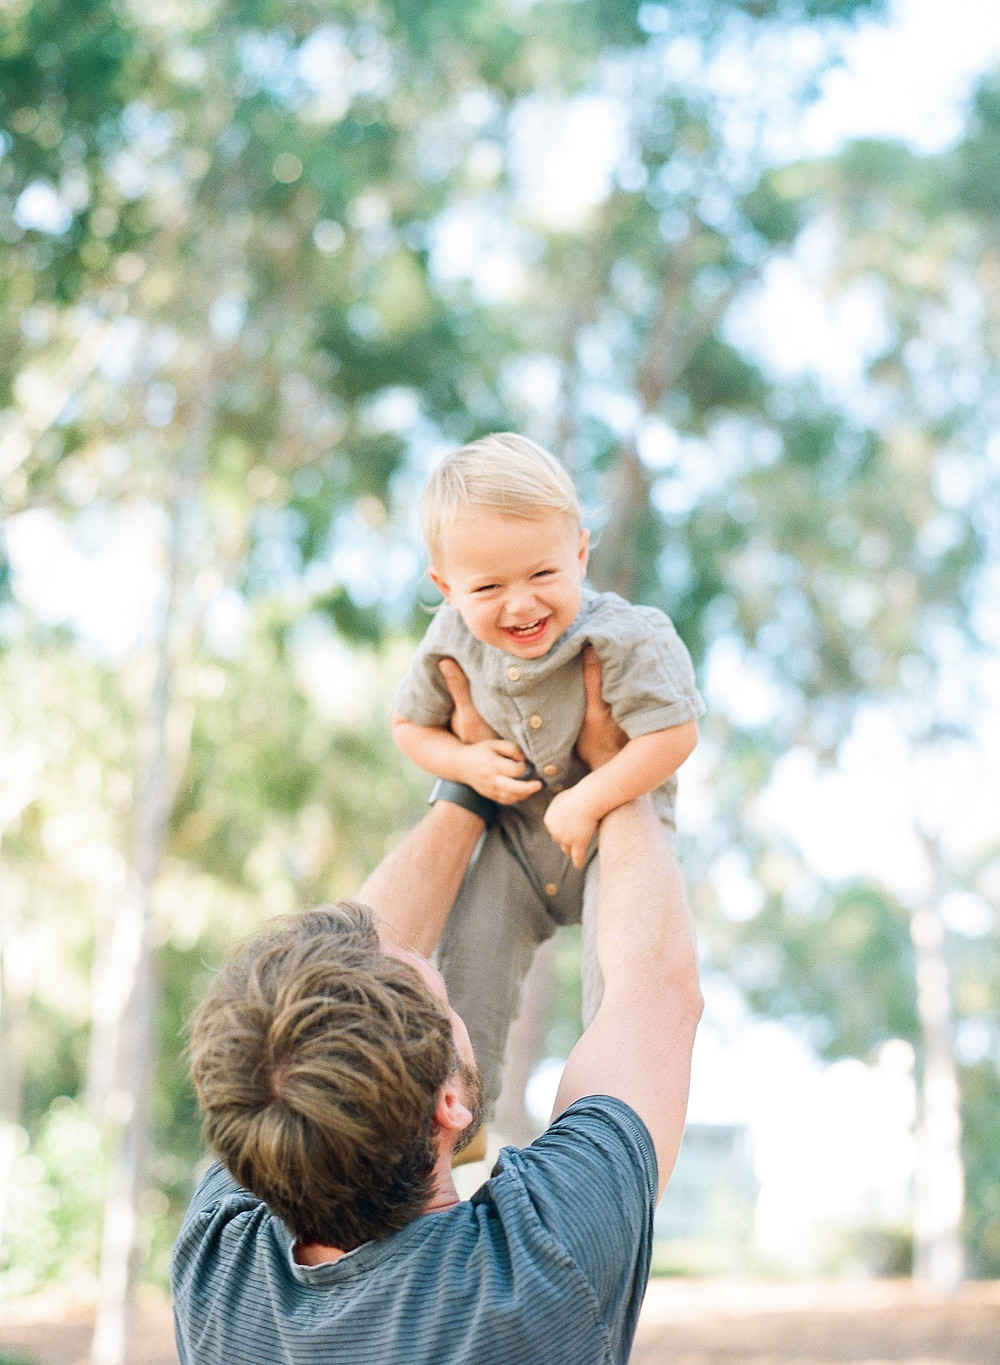 Toddler held up in the air by dad laughing at Palos Verdes Family Portraits